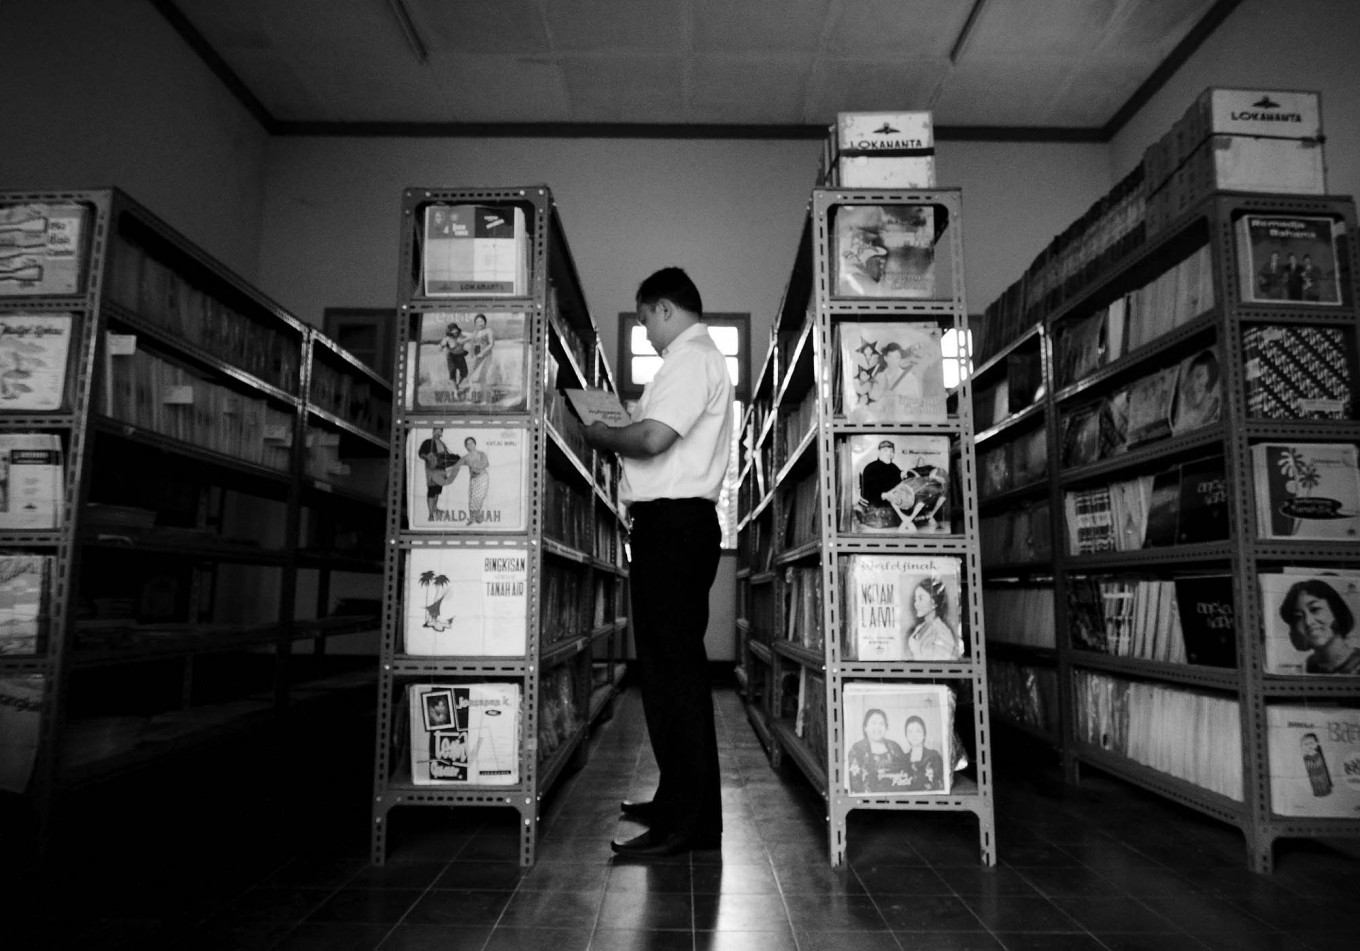 A staff members checks on records shelved in a storage room at Lokananta. JP/Ganug Nugroho Adi